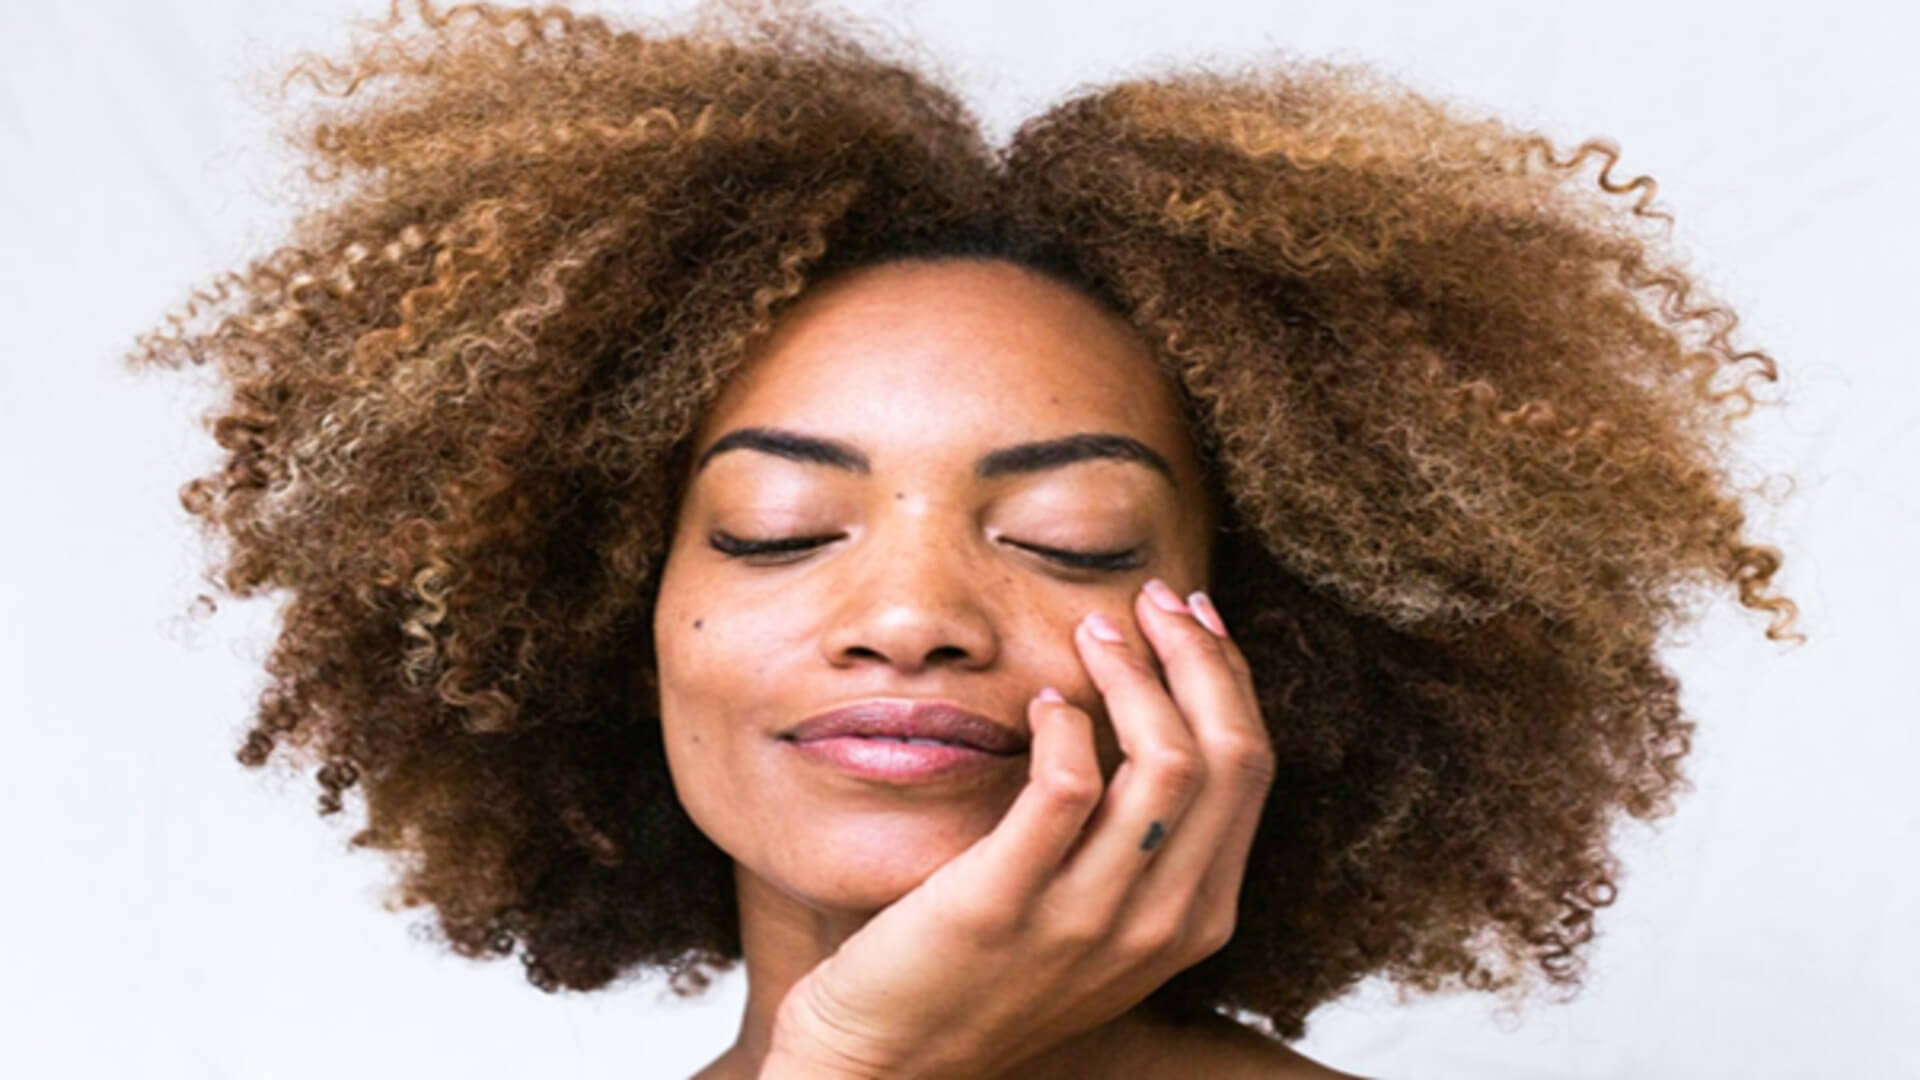 5 Miracle Ways to Add CBD into Your Beauty Routine